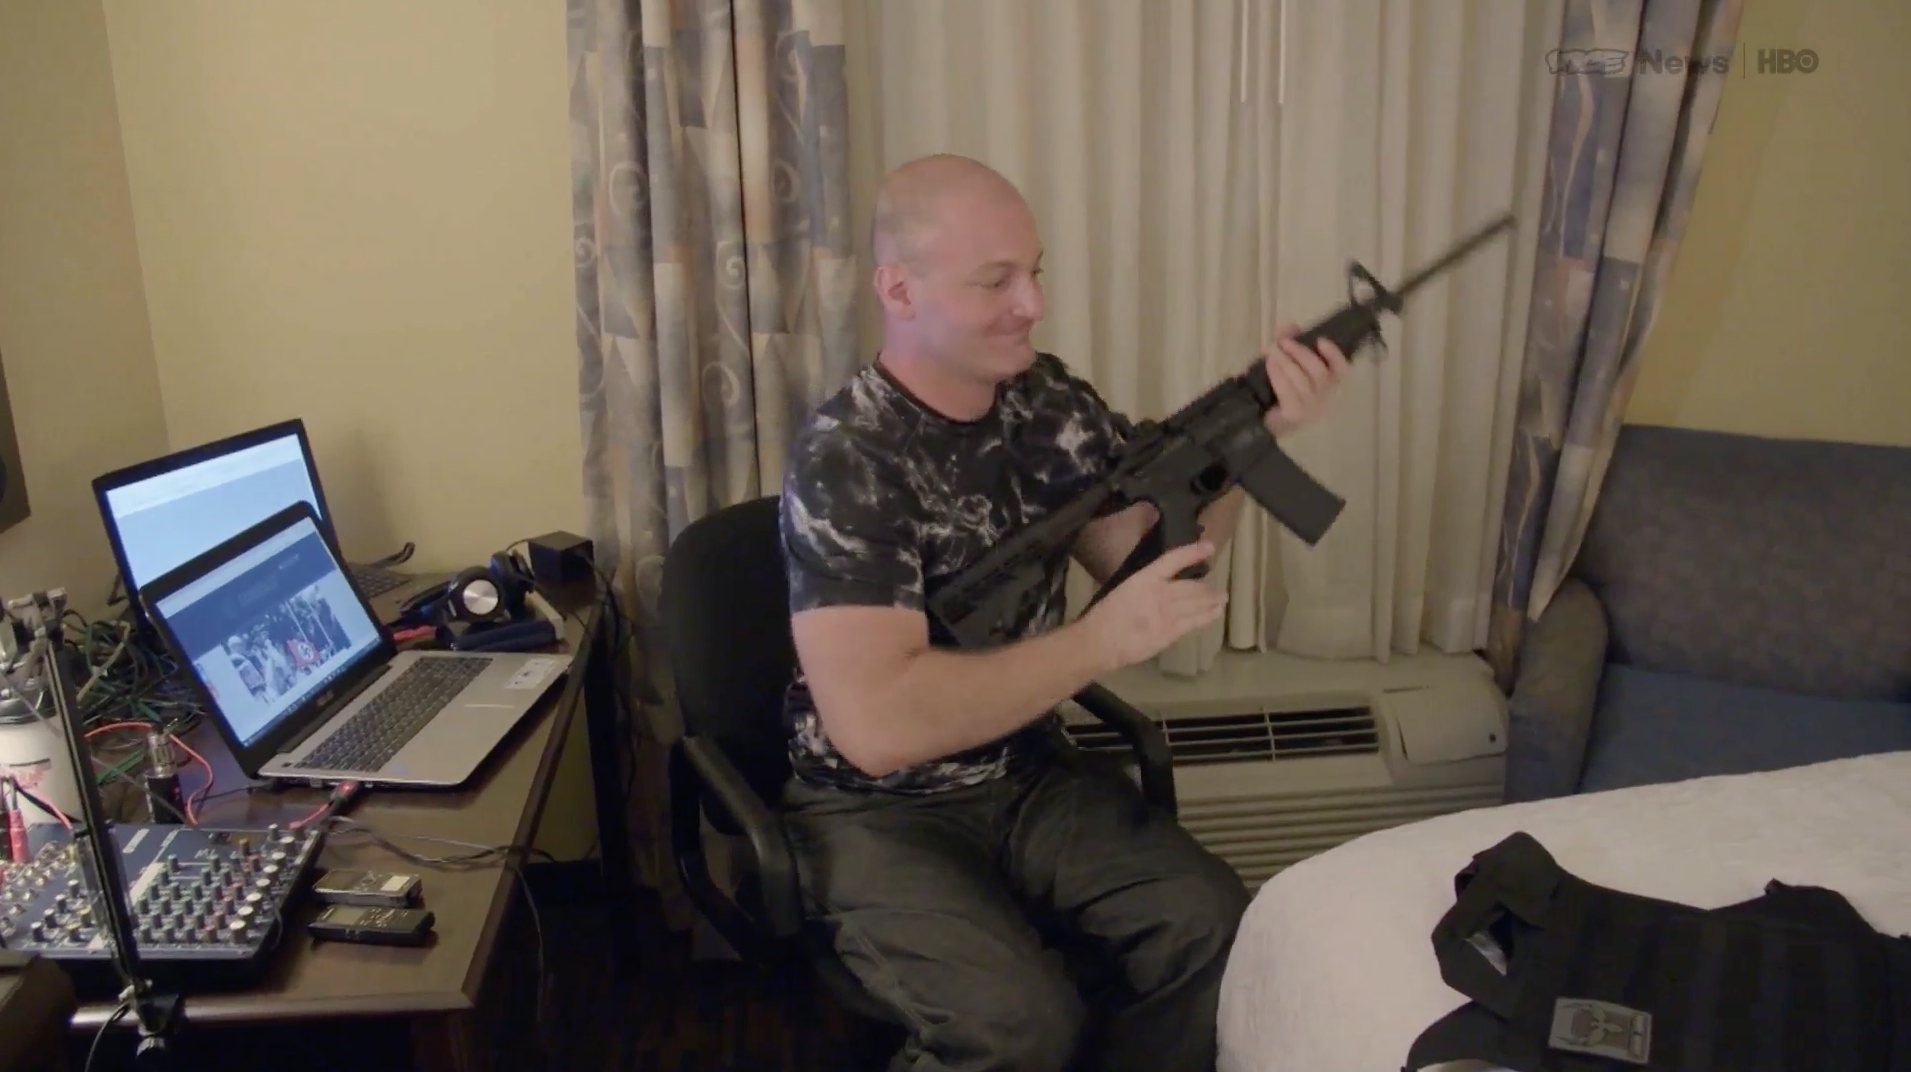 Christopher Cantwell shows VICE the arsenal he brought with him to Charlottesville. (Credit: VICE Media)